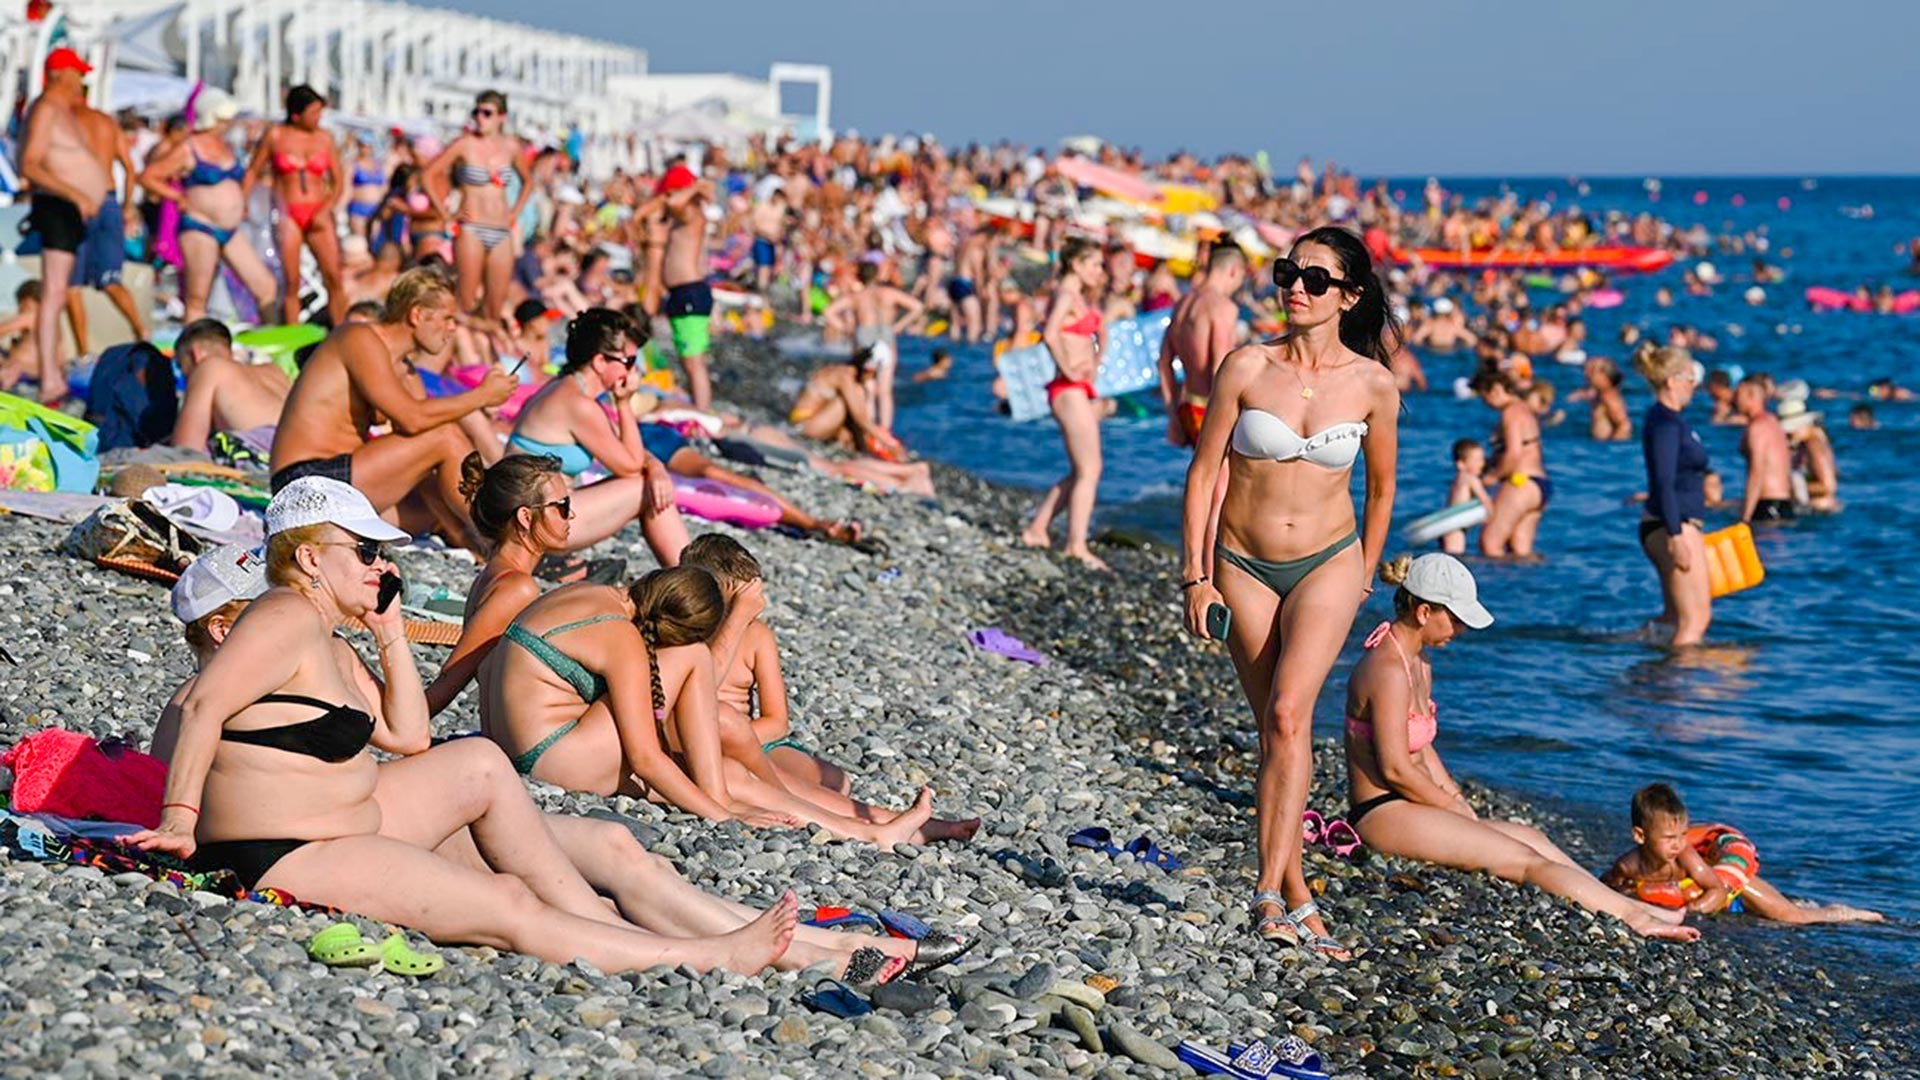 People vacationing in Sochi.